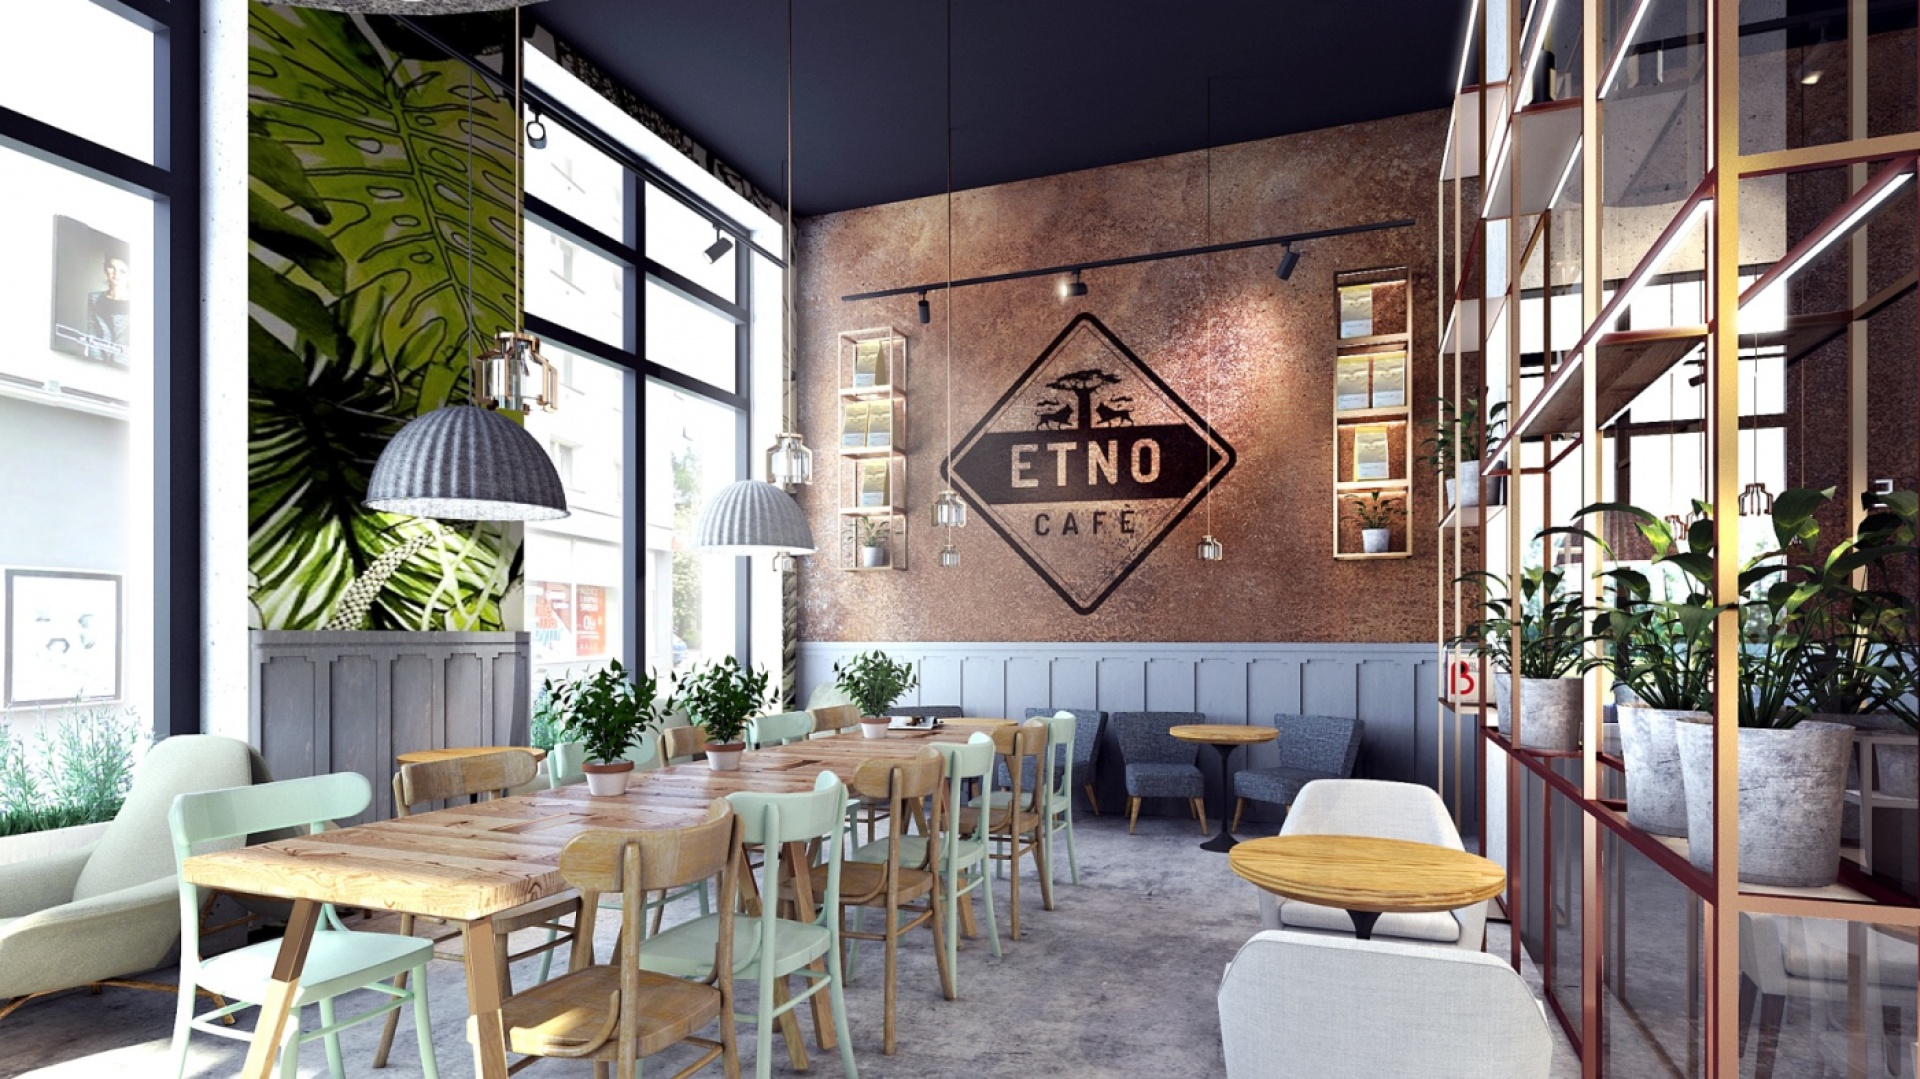 Etno Cafe. Fot. Forbis Group